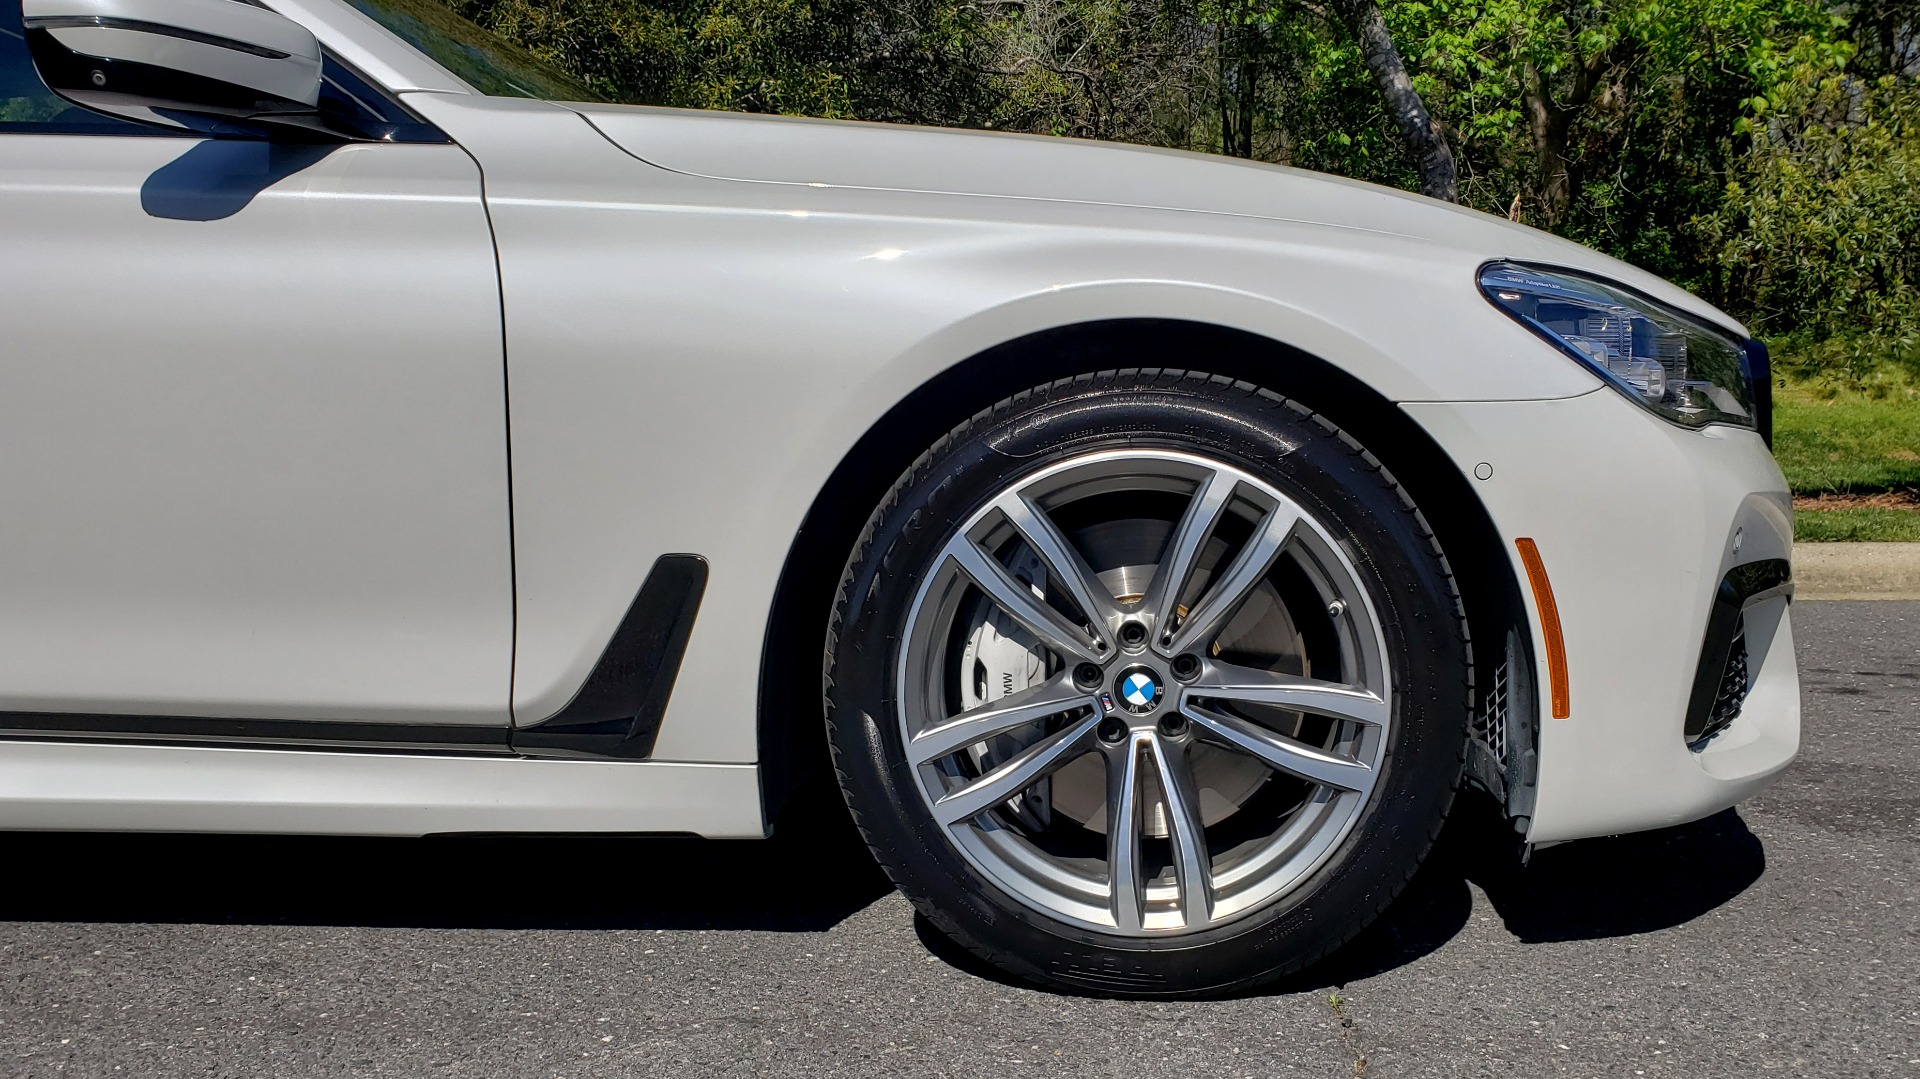 Used 2017 BMW 7 SERIES 750I XDRIVE / M-SPORT / EXEC PKG / DRVR ASST PLUS II / CLD WTHR for sale $48,495 at Formula Imports in Charlotte NC 28227 93